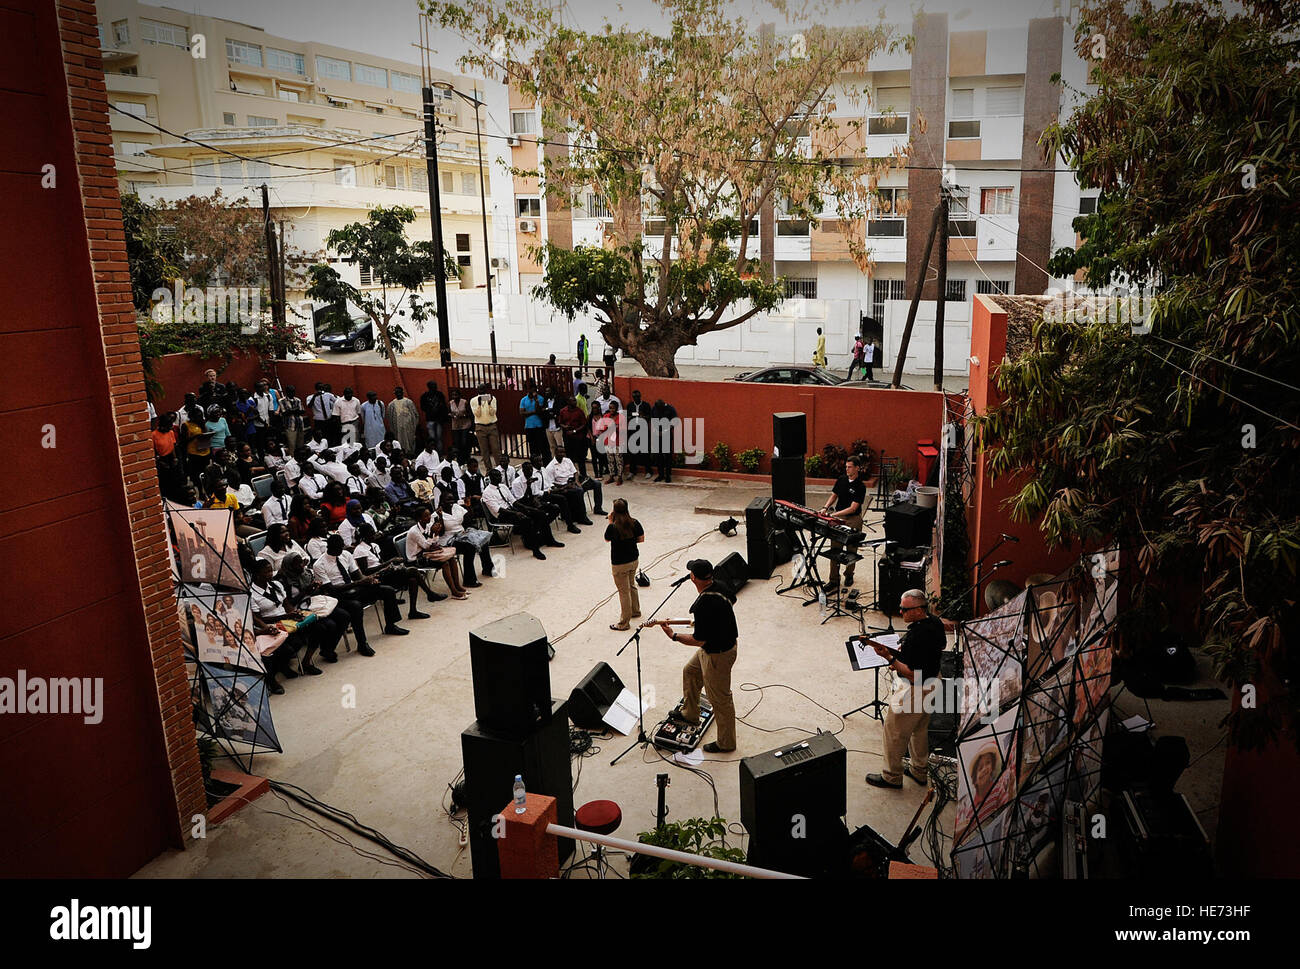 The U.S. Air Forces in Europe and Air Forces Africa band performs in Dakar, Senegal, June 13, 2014, at a local university. - Stock Image